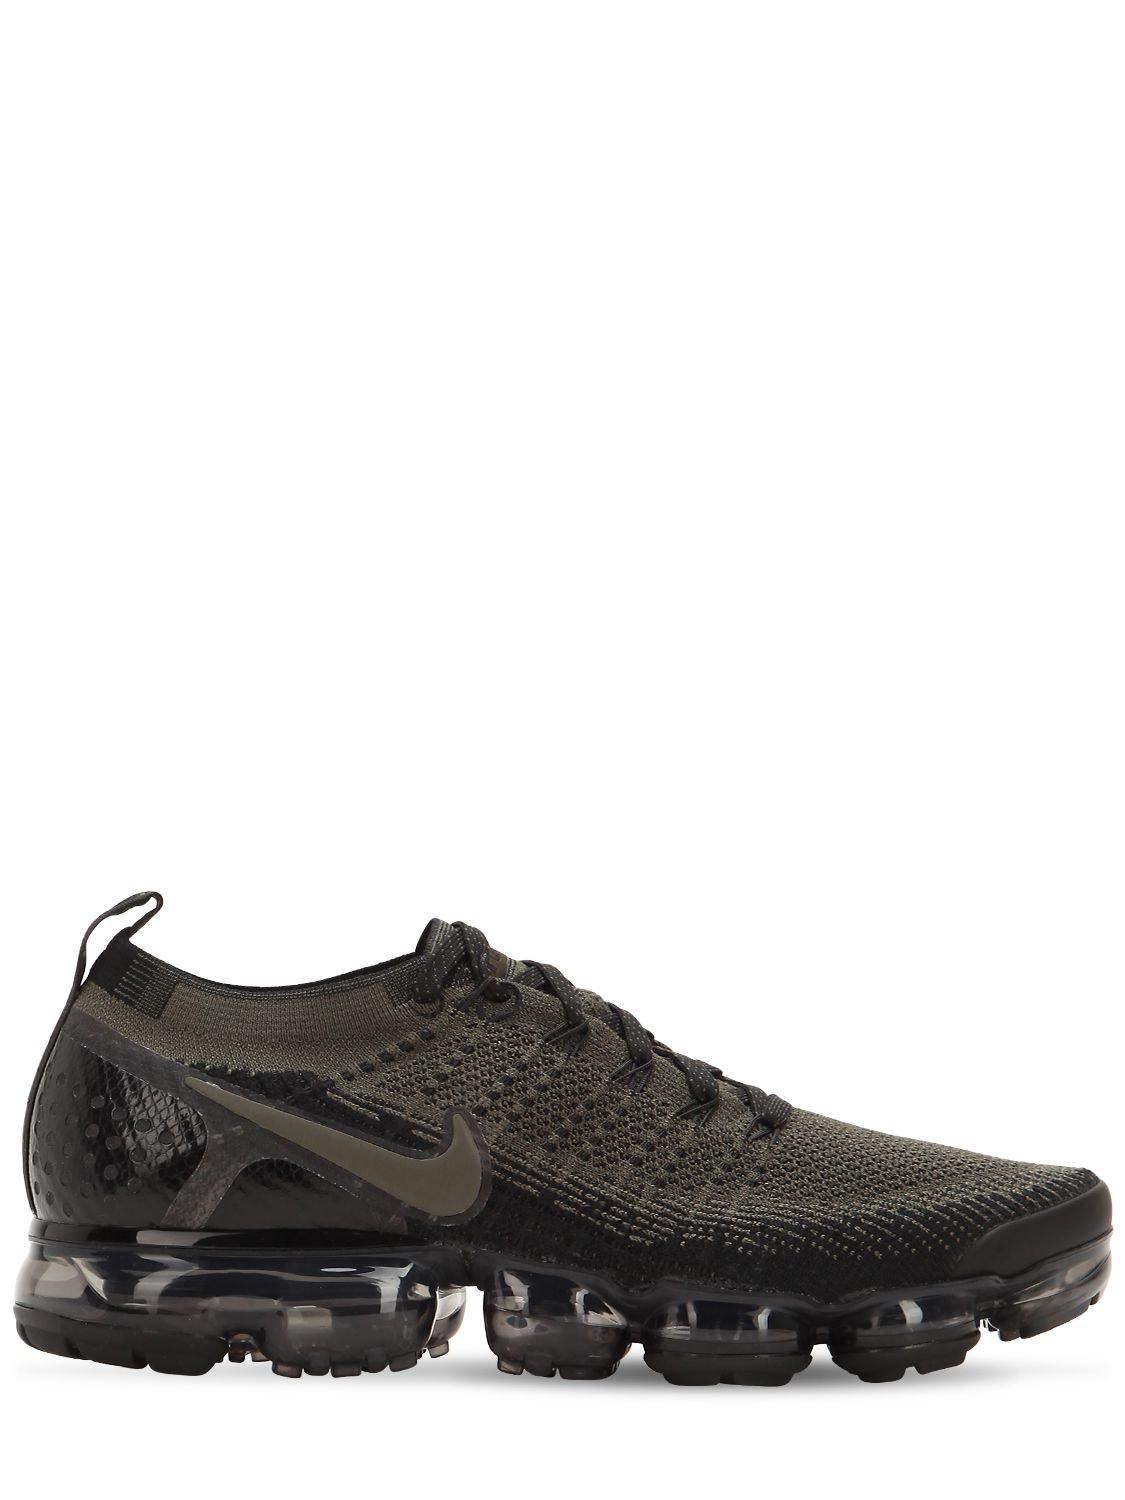 cb21a36c7f6f Lyst - Nike Air Vapormax Flyknit 2 Sneakers in Black for Men